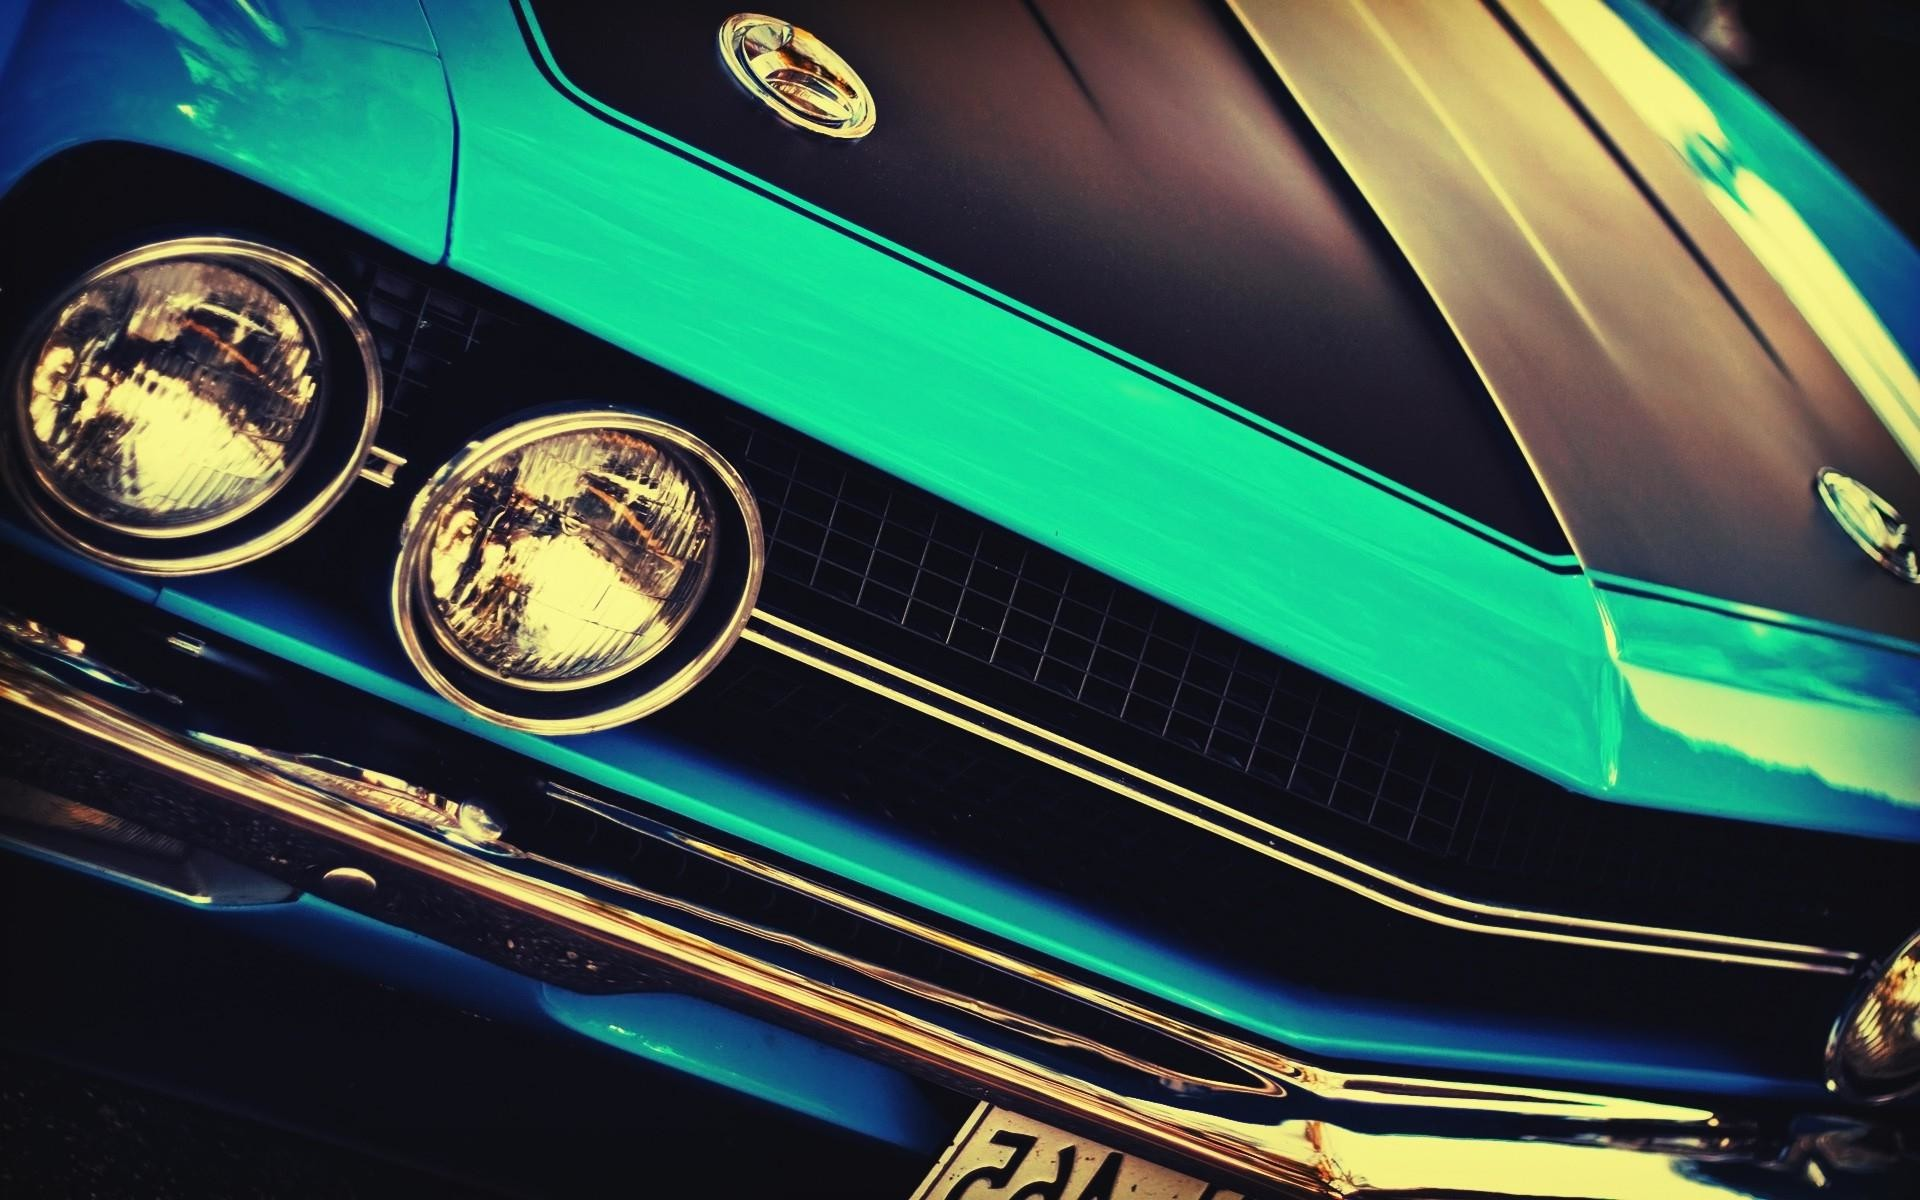 Classic American Muscle Cars Wallpapers HD / Desktop and Mobile Backgrounds